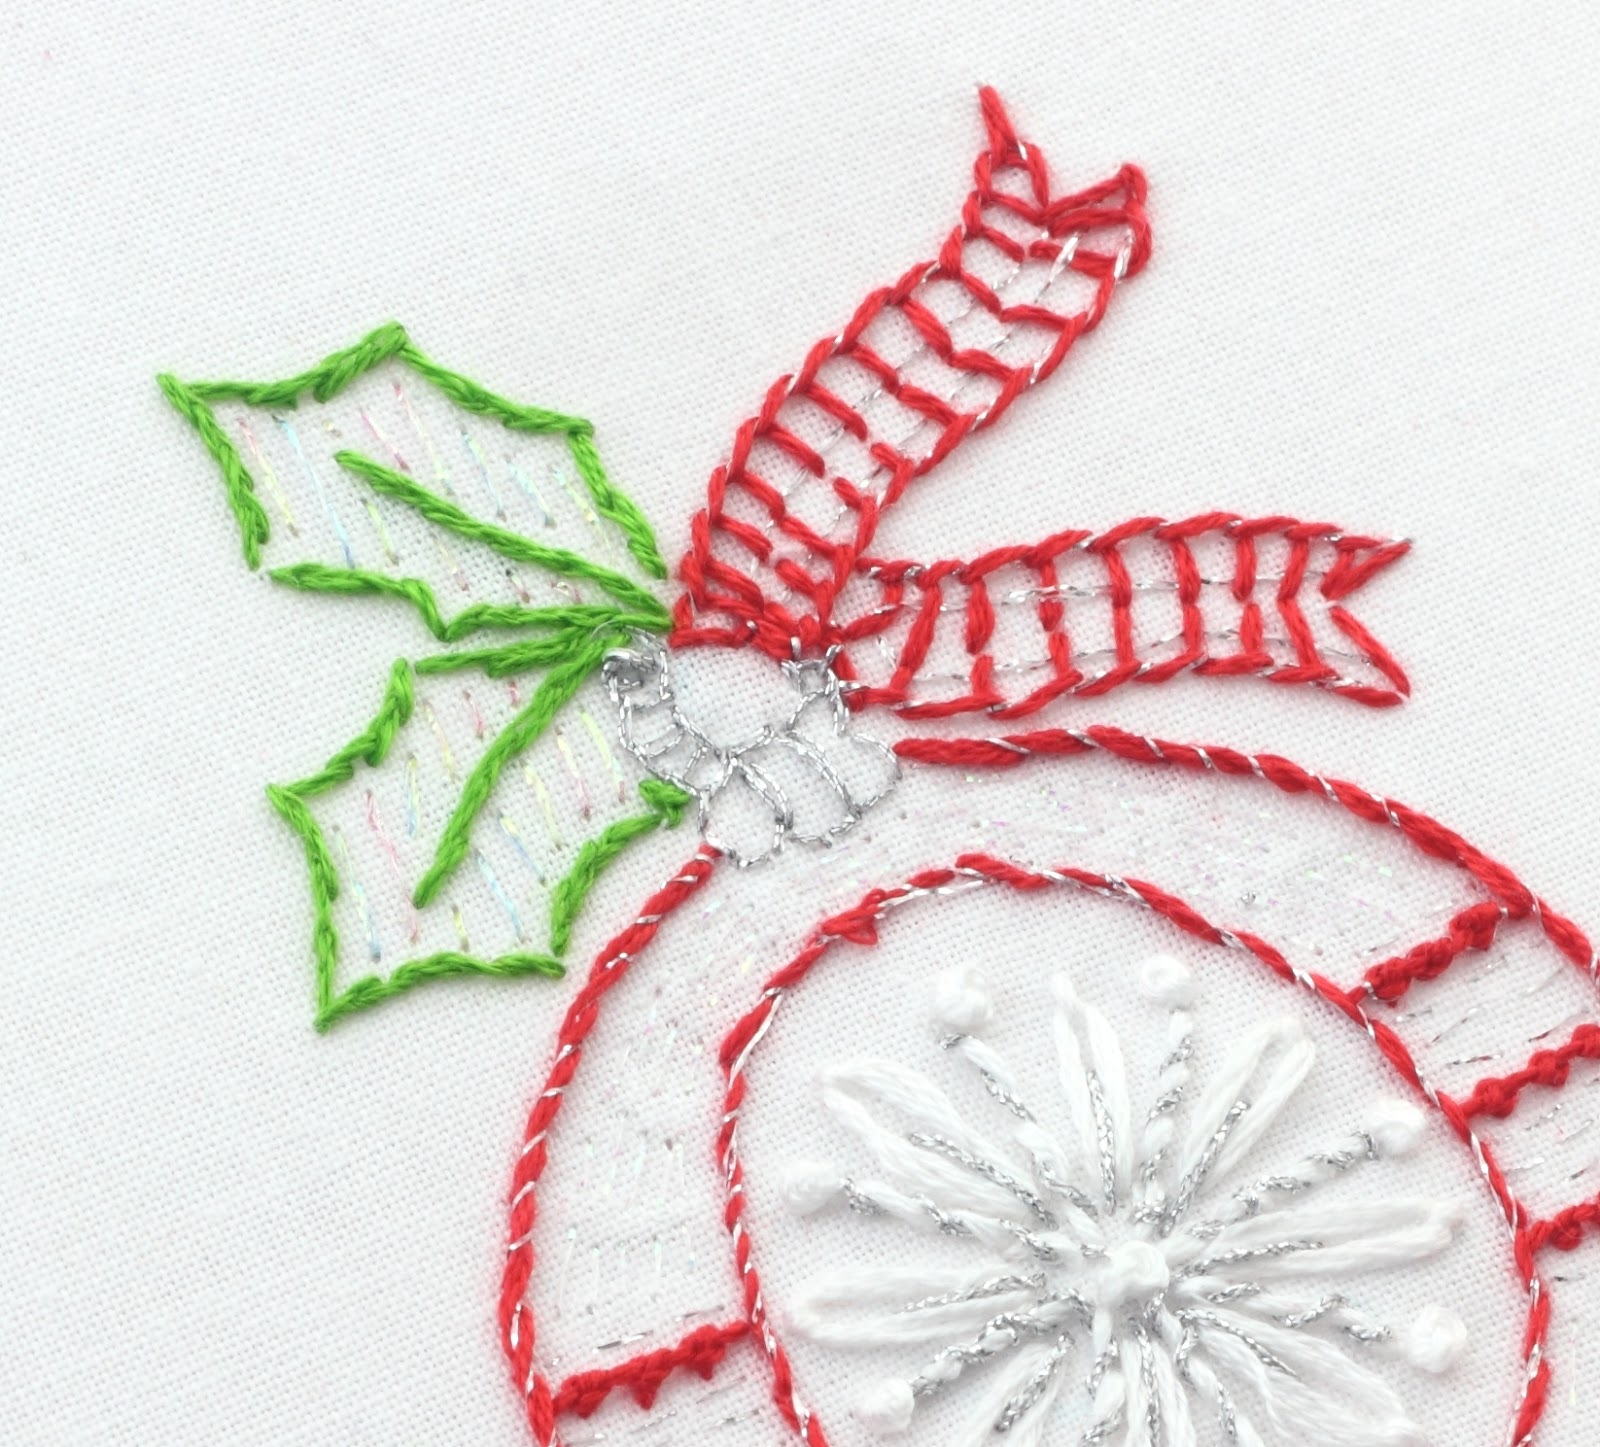 Scandinavian Embroidery Patterns Big B Scandinavian Christmas Stitching Part One